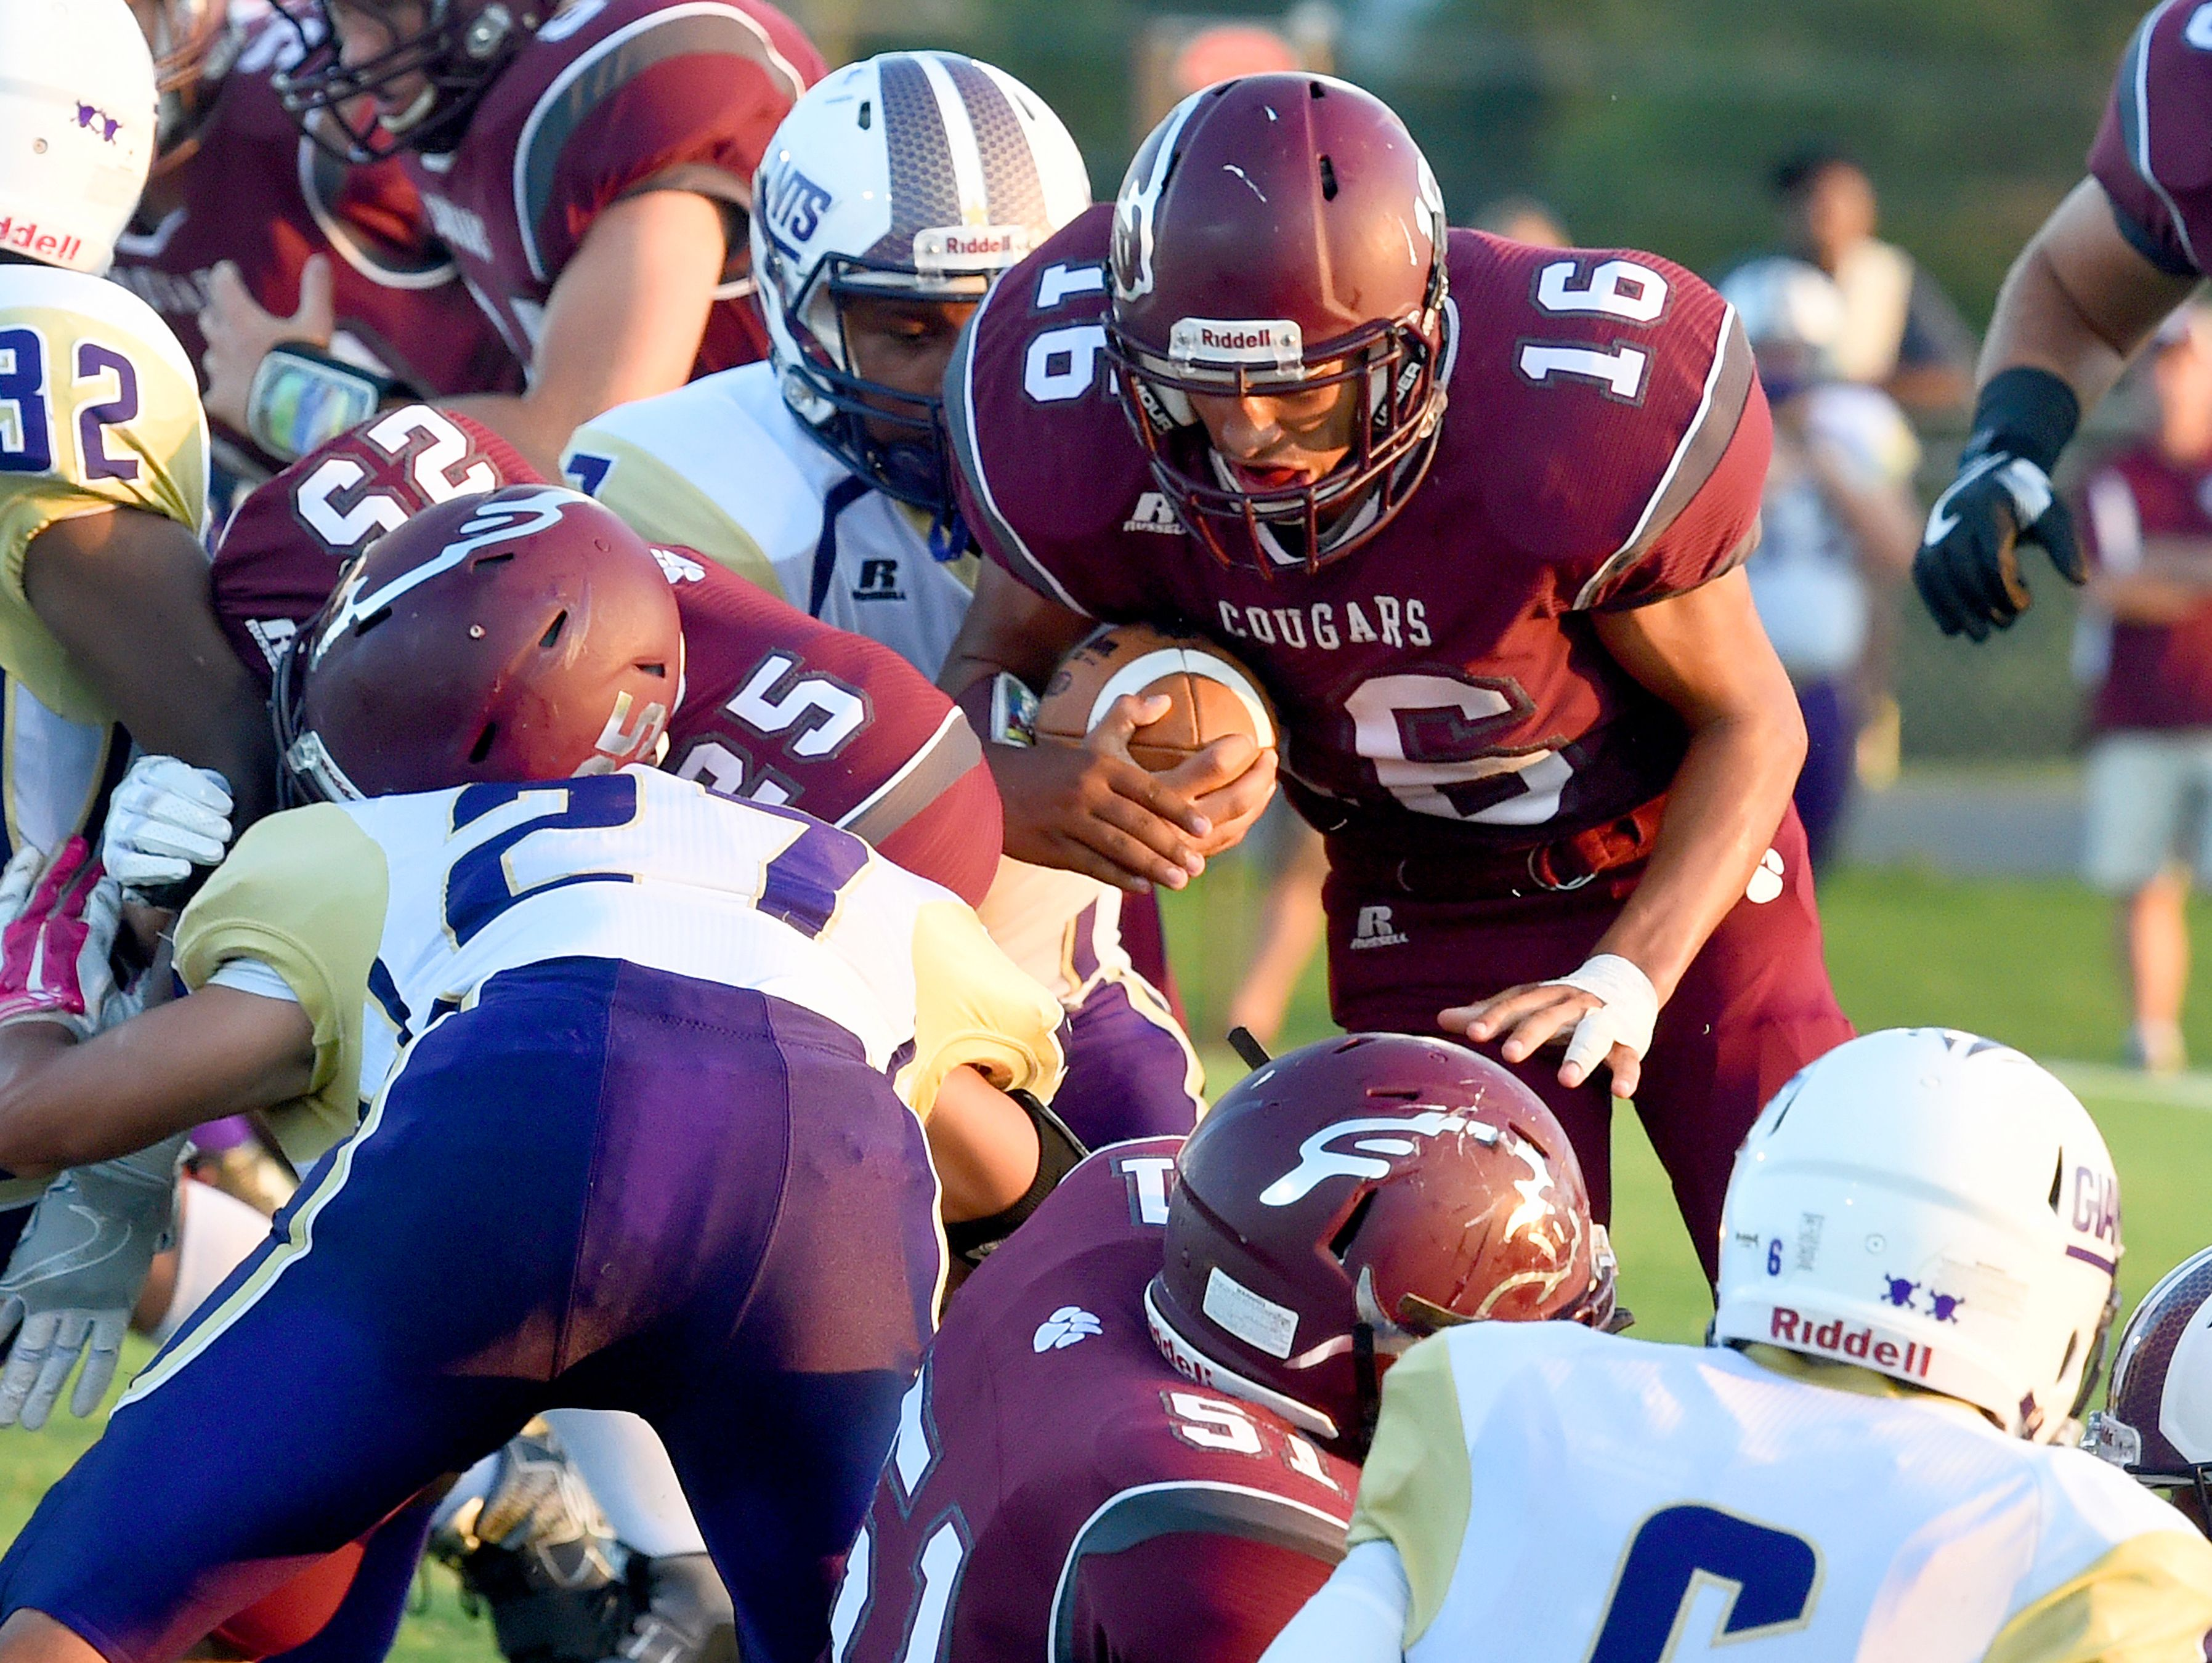 Stuarts Draft's Xzavier Gunn looks for a way through with the ball during a football game played in Stuarts Draft on Friday, Sept. 9, 2016.